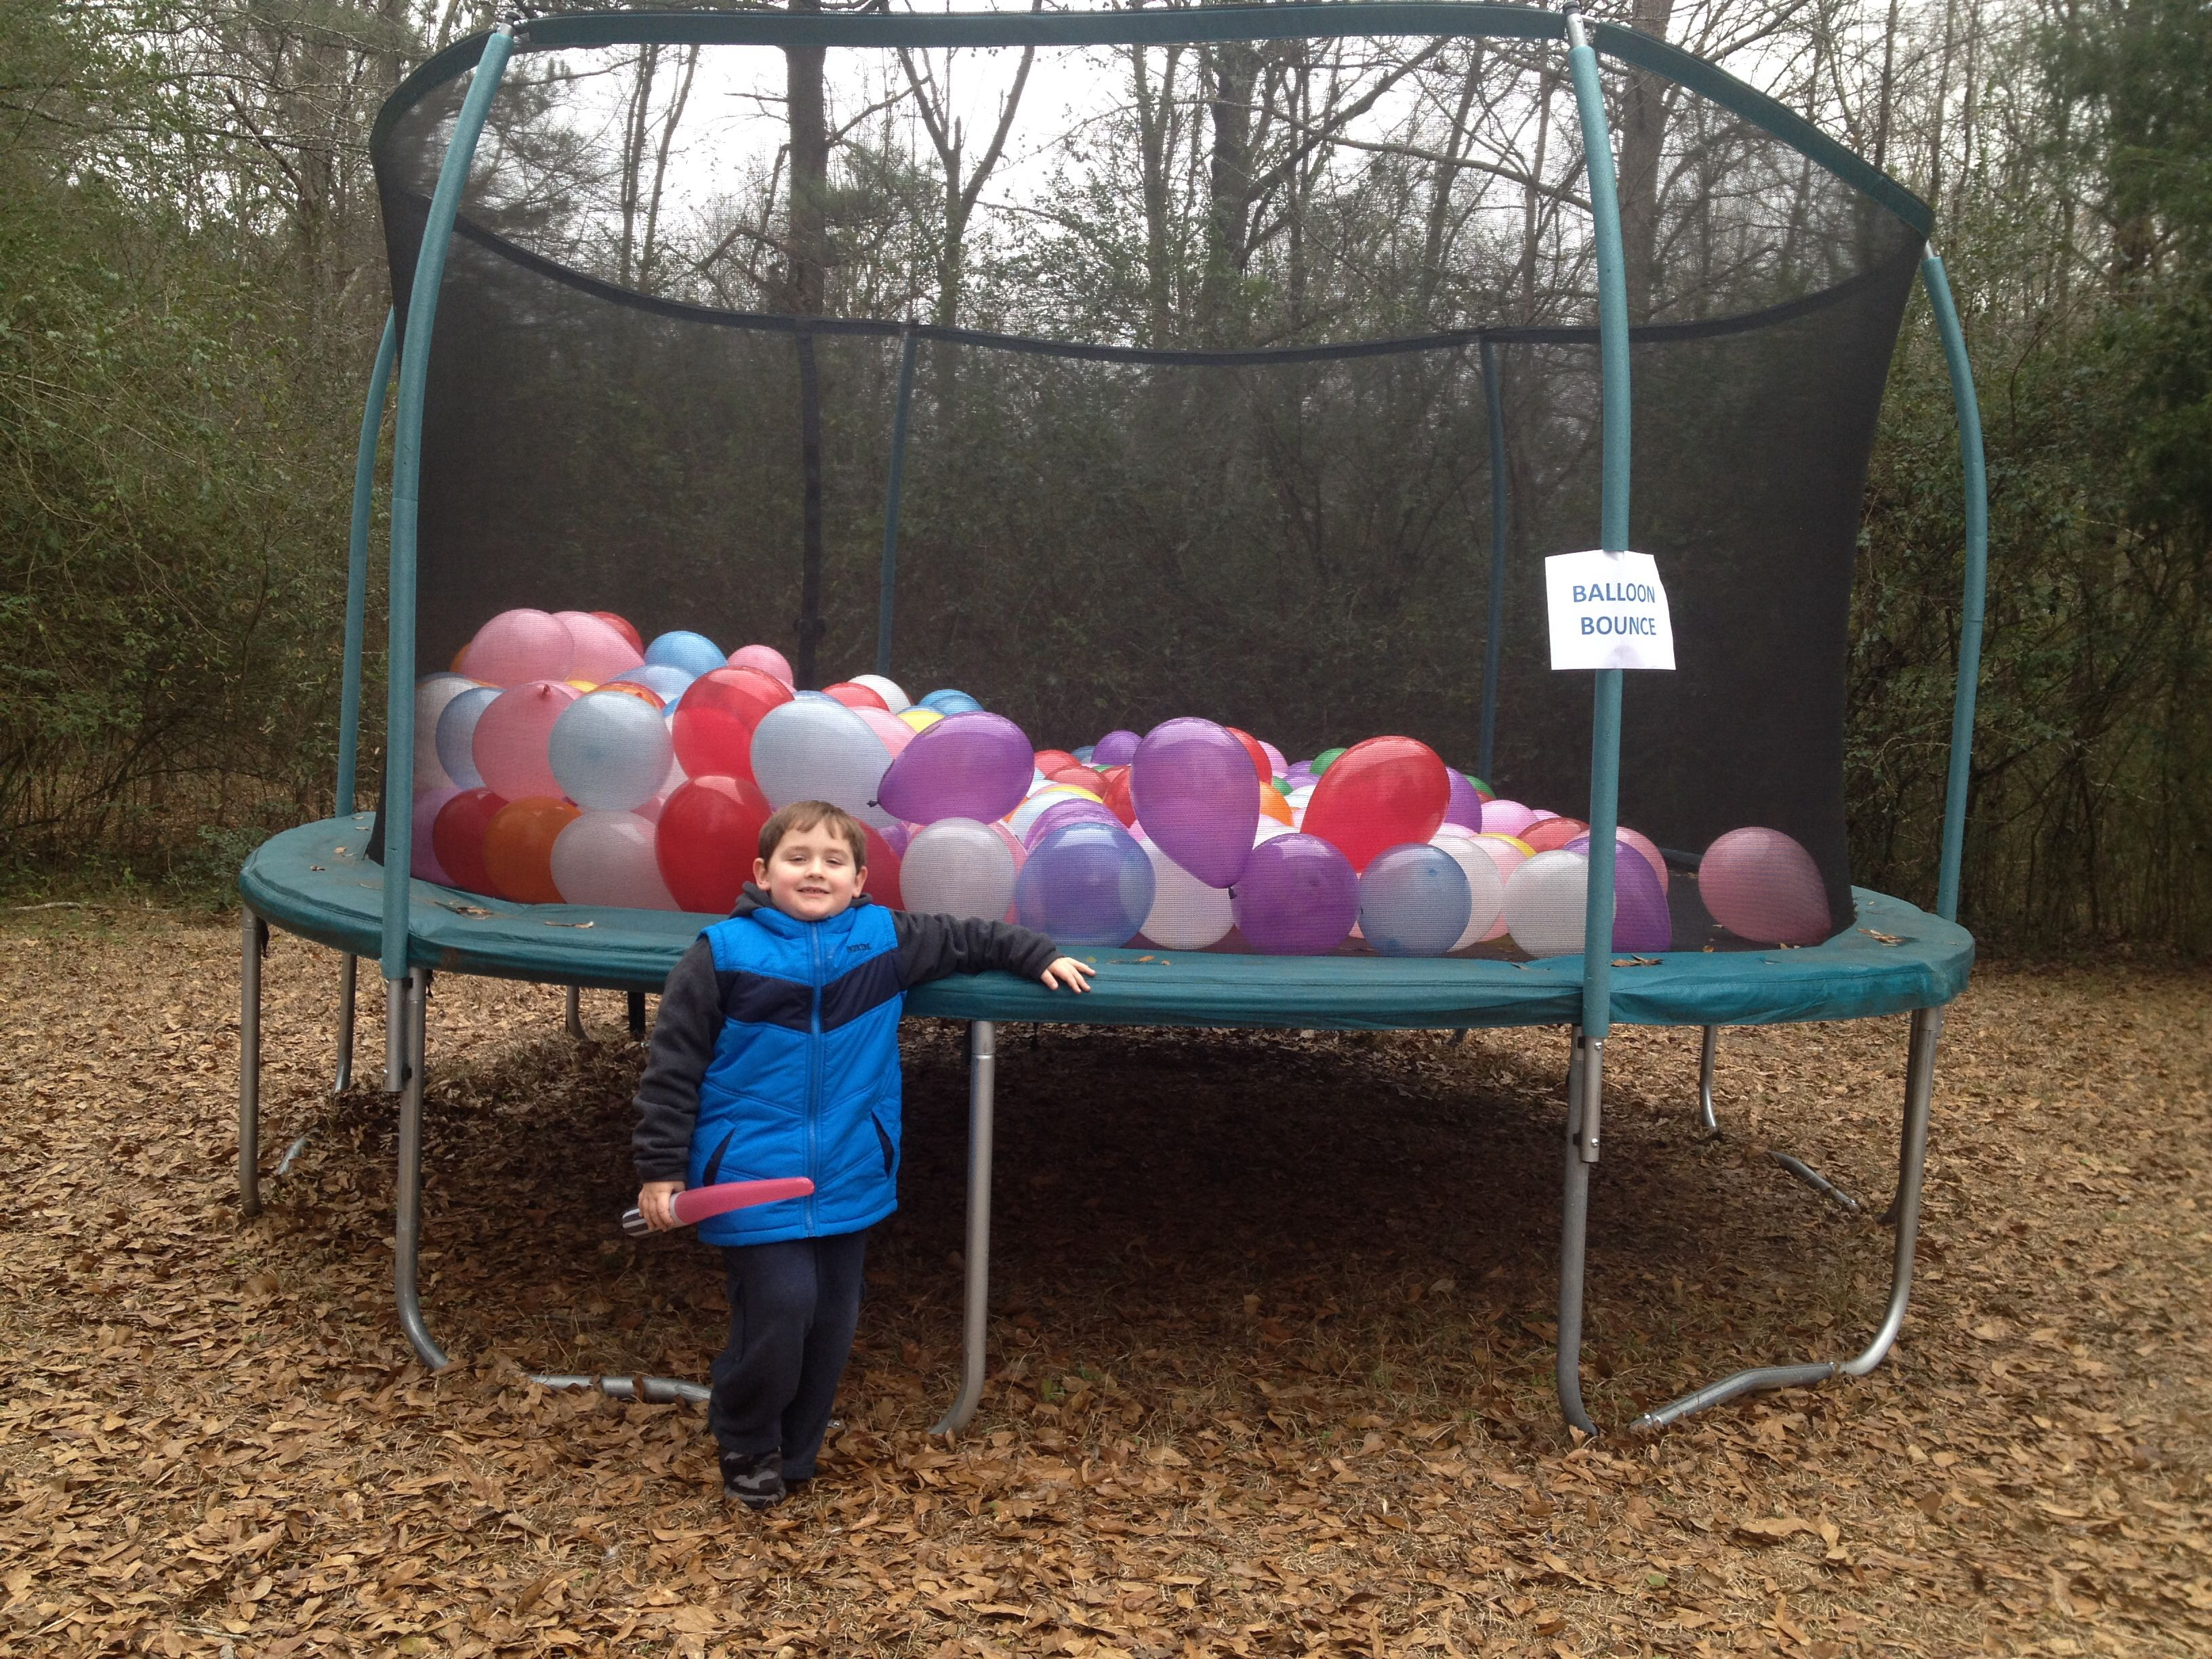 Ballon Bounce  over 200 balloons filled the trampoline for my 6 yr old birthday ... It was a big hit for the kids & adults!